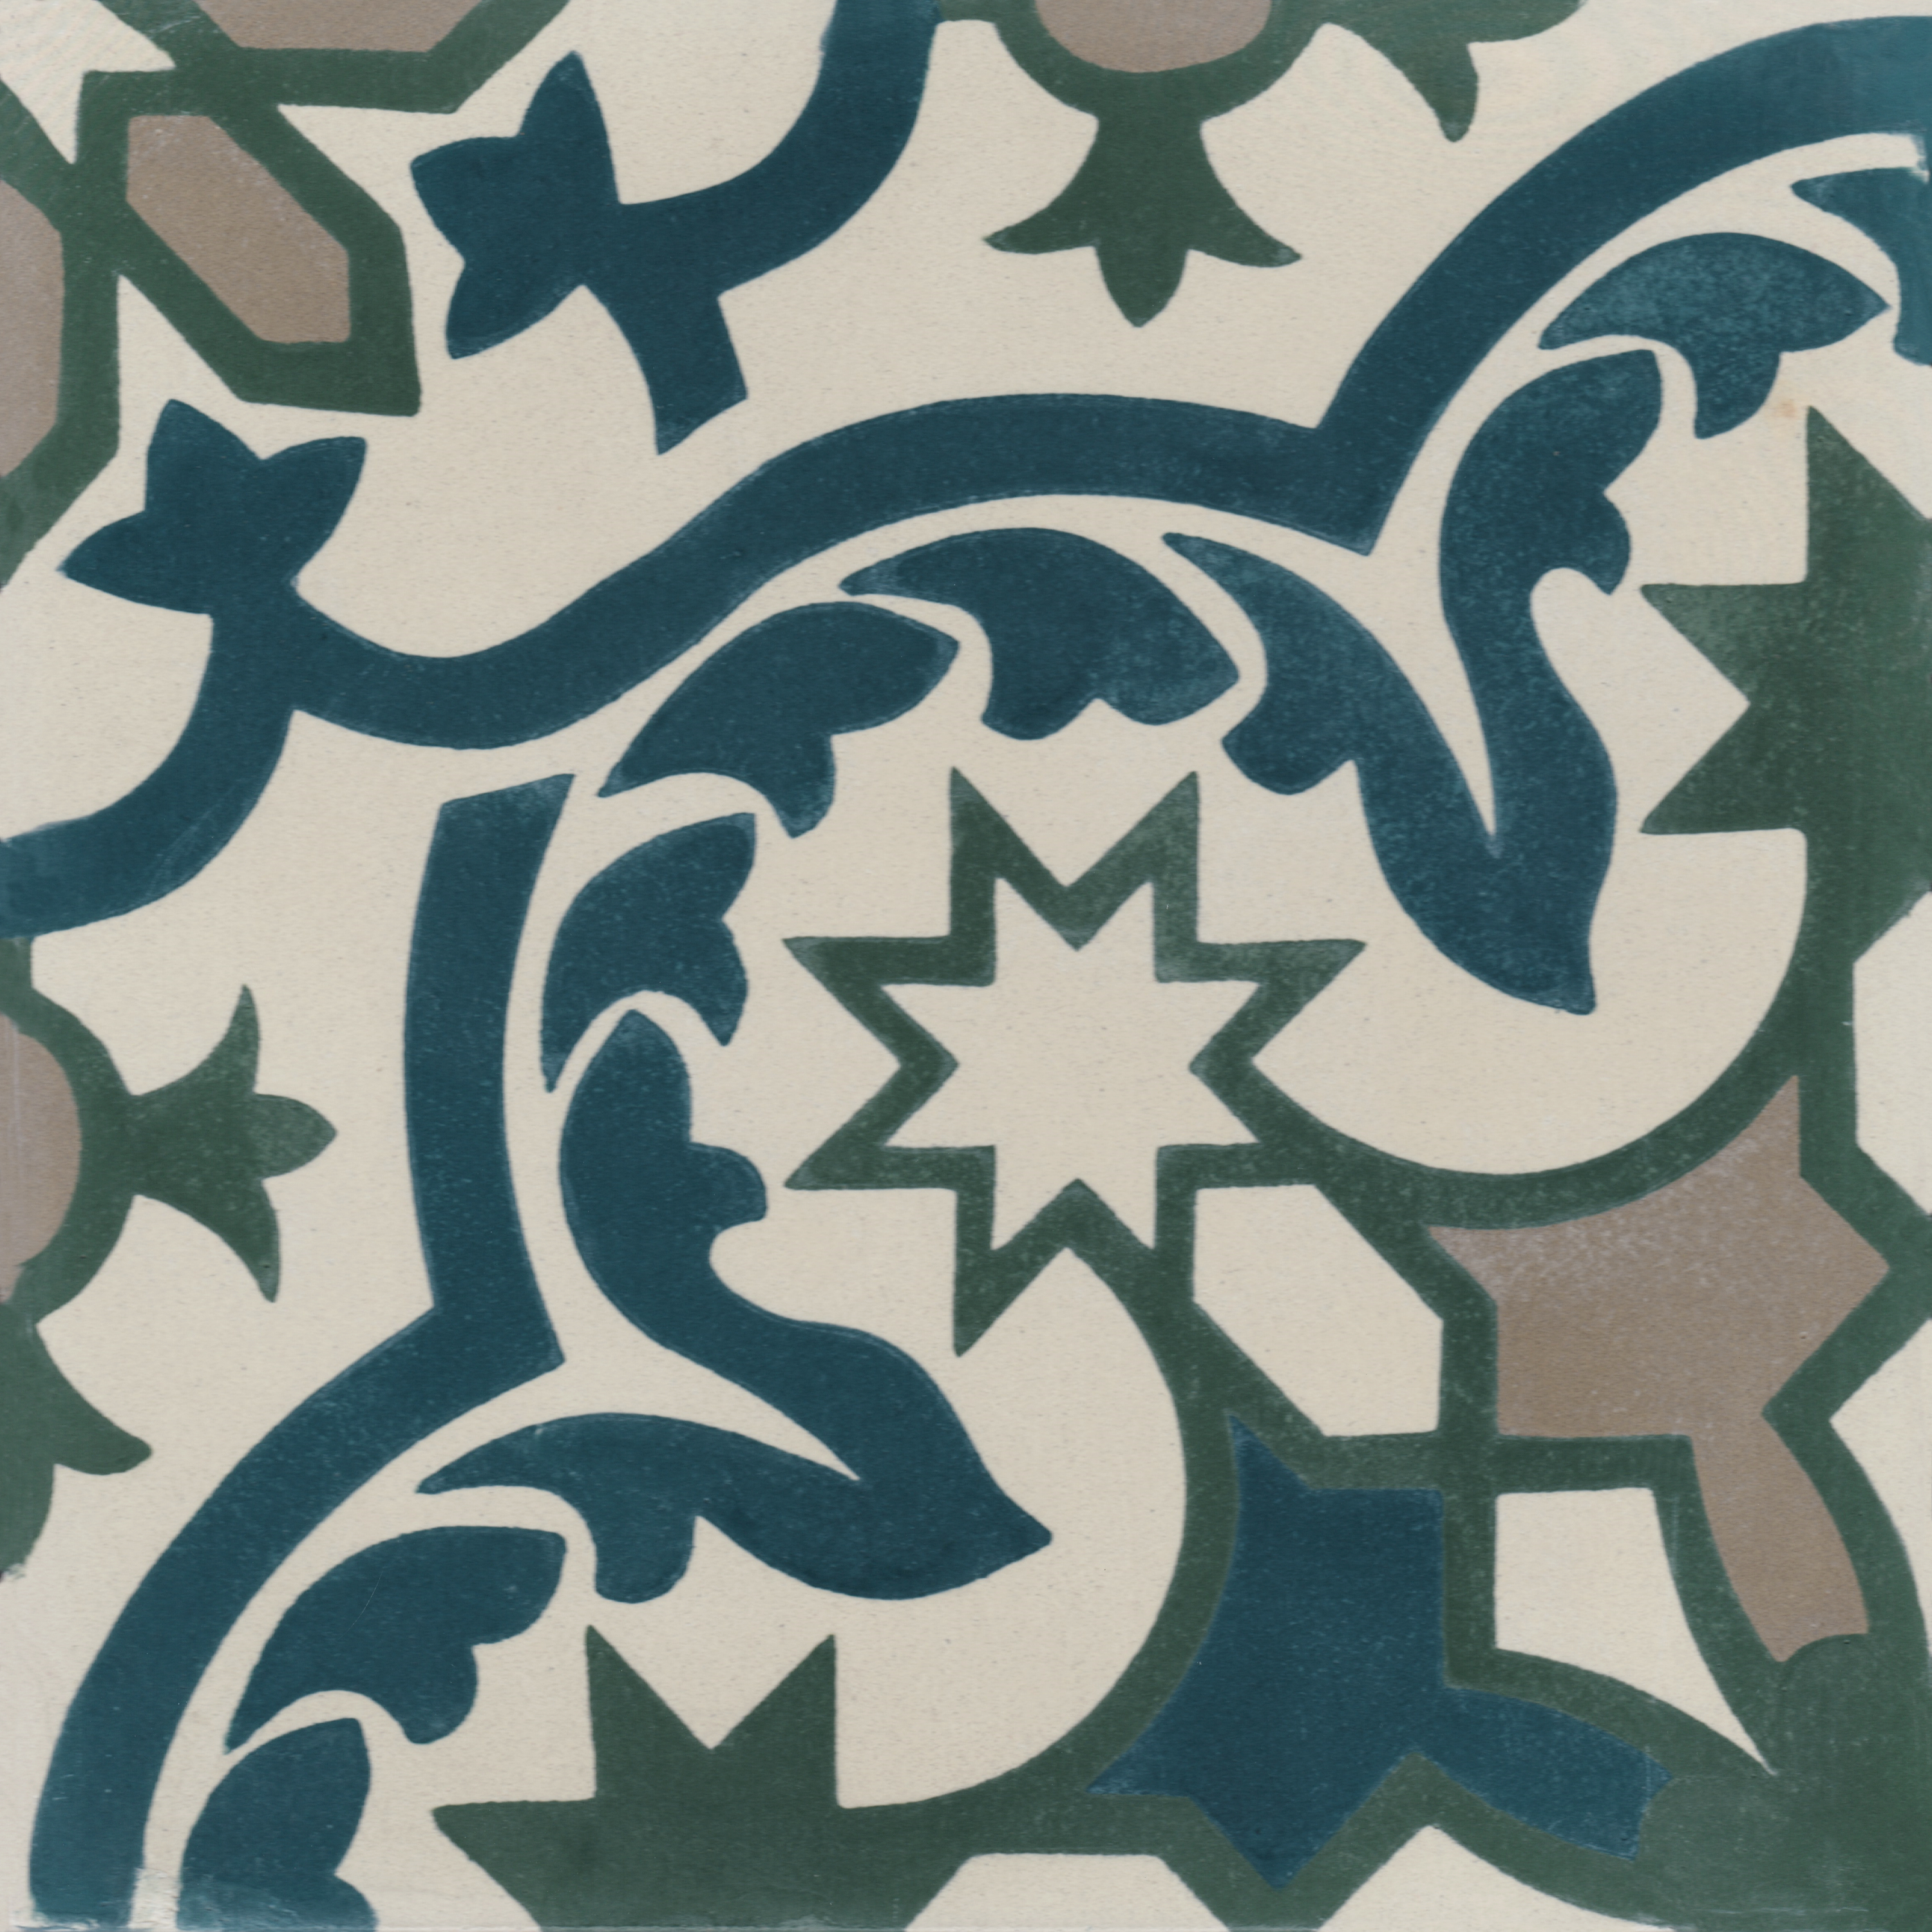 - Havana Cantina Cement Tiles Evoke Cool, Eclectic Look And Feel Of